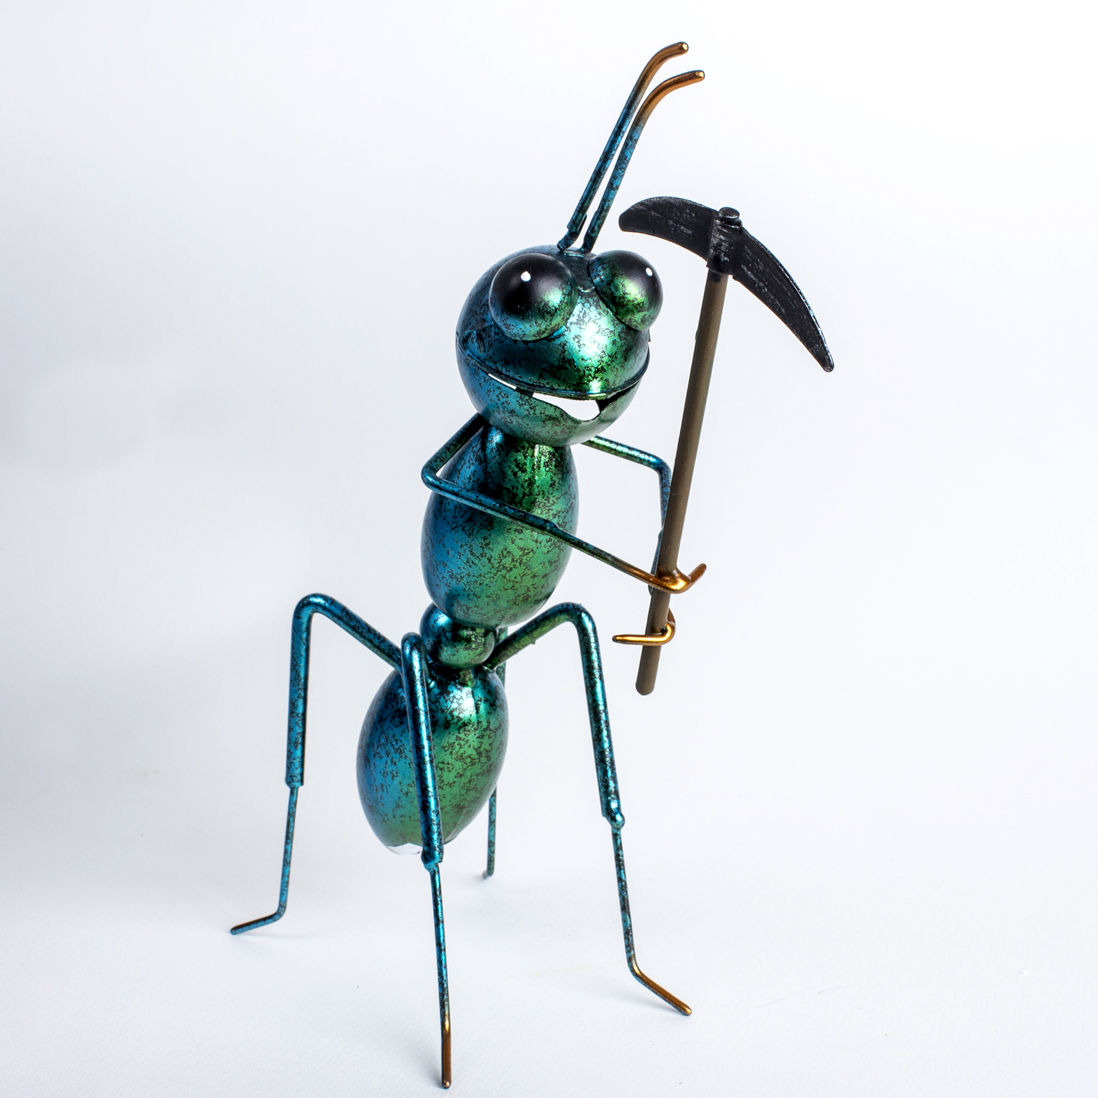 Metal Ant Ready To Dig